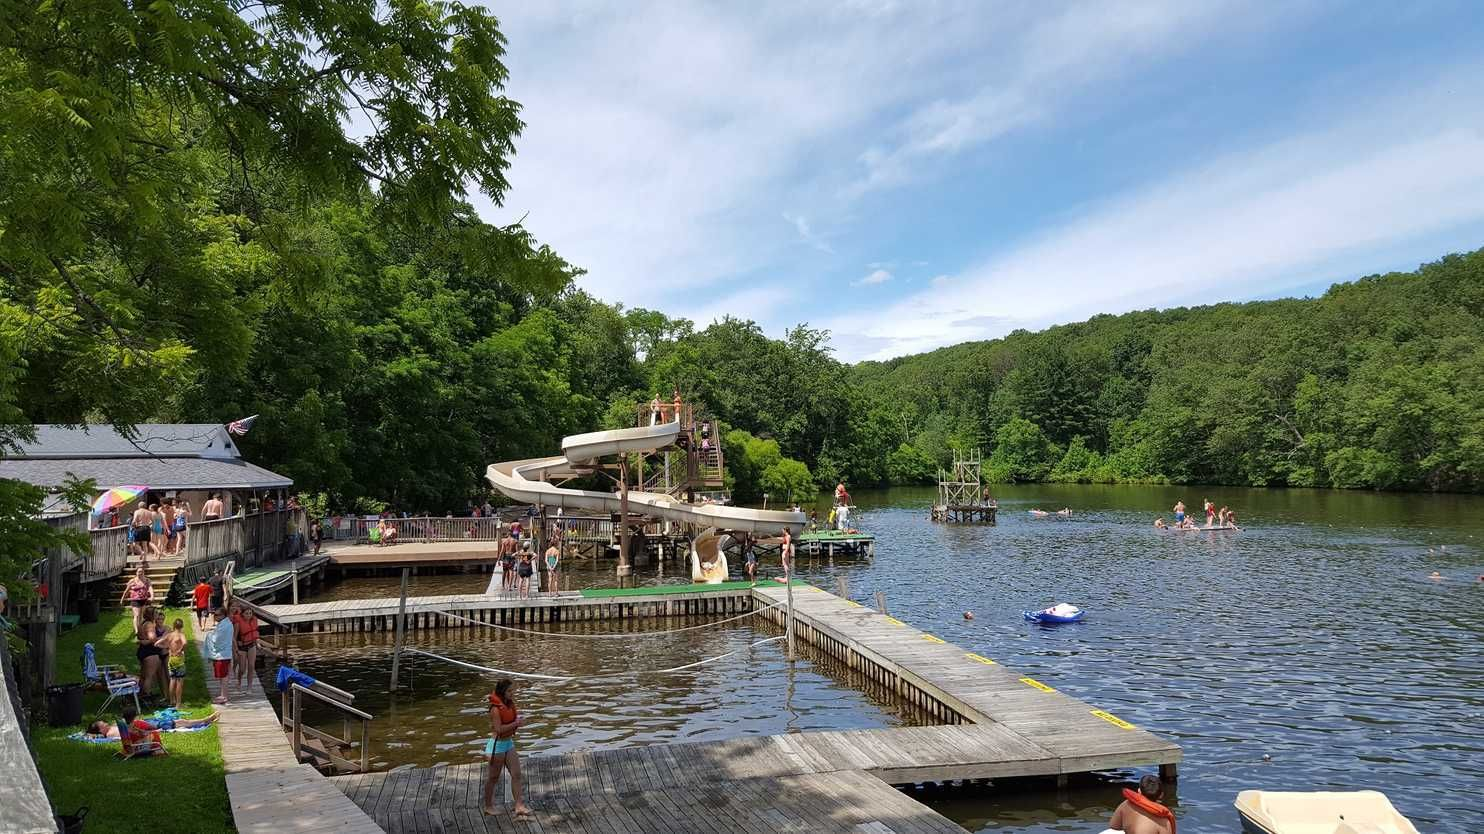 A guide to the dc areas lakes swimmin holes and